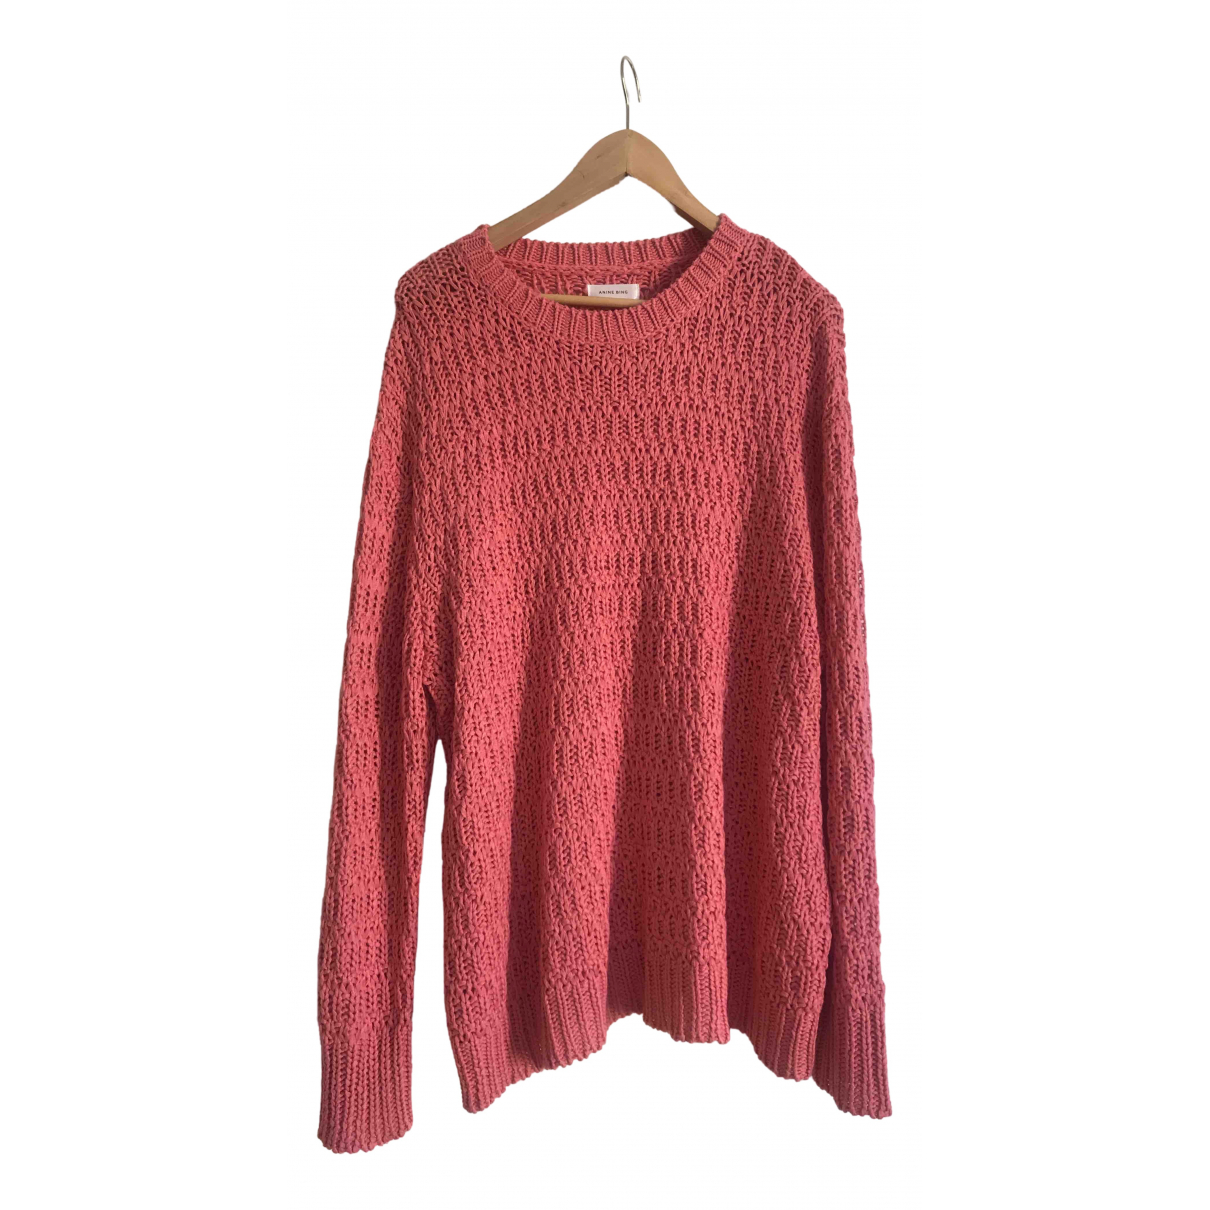 Anine Bing Fall Winter 2019 Pullover in  Rosa Polyester